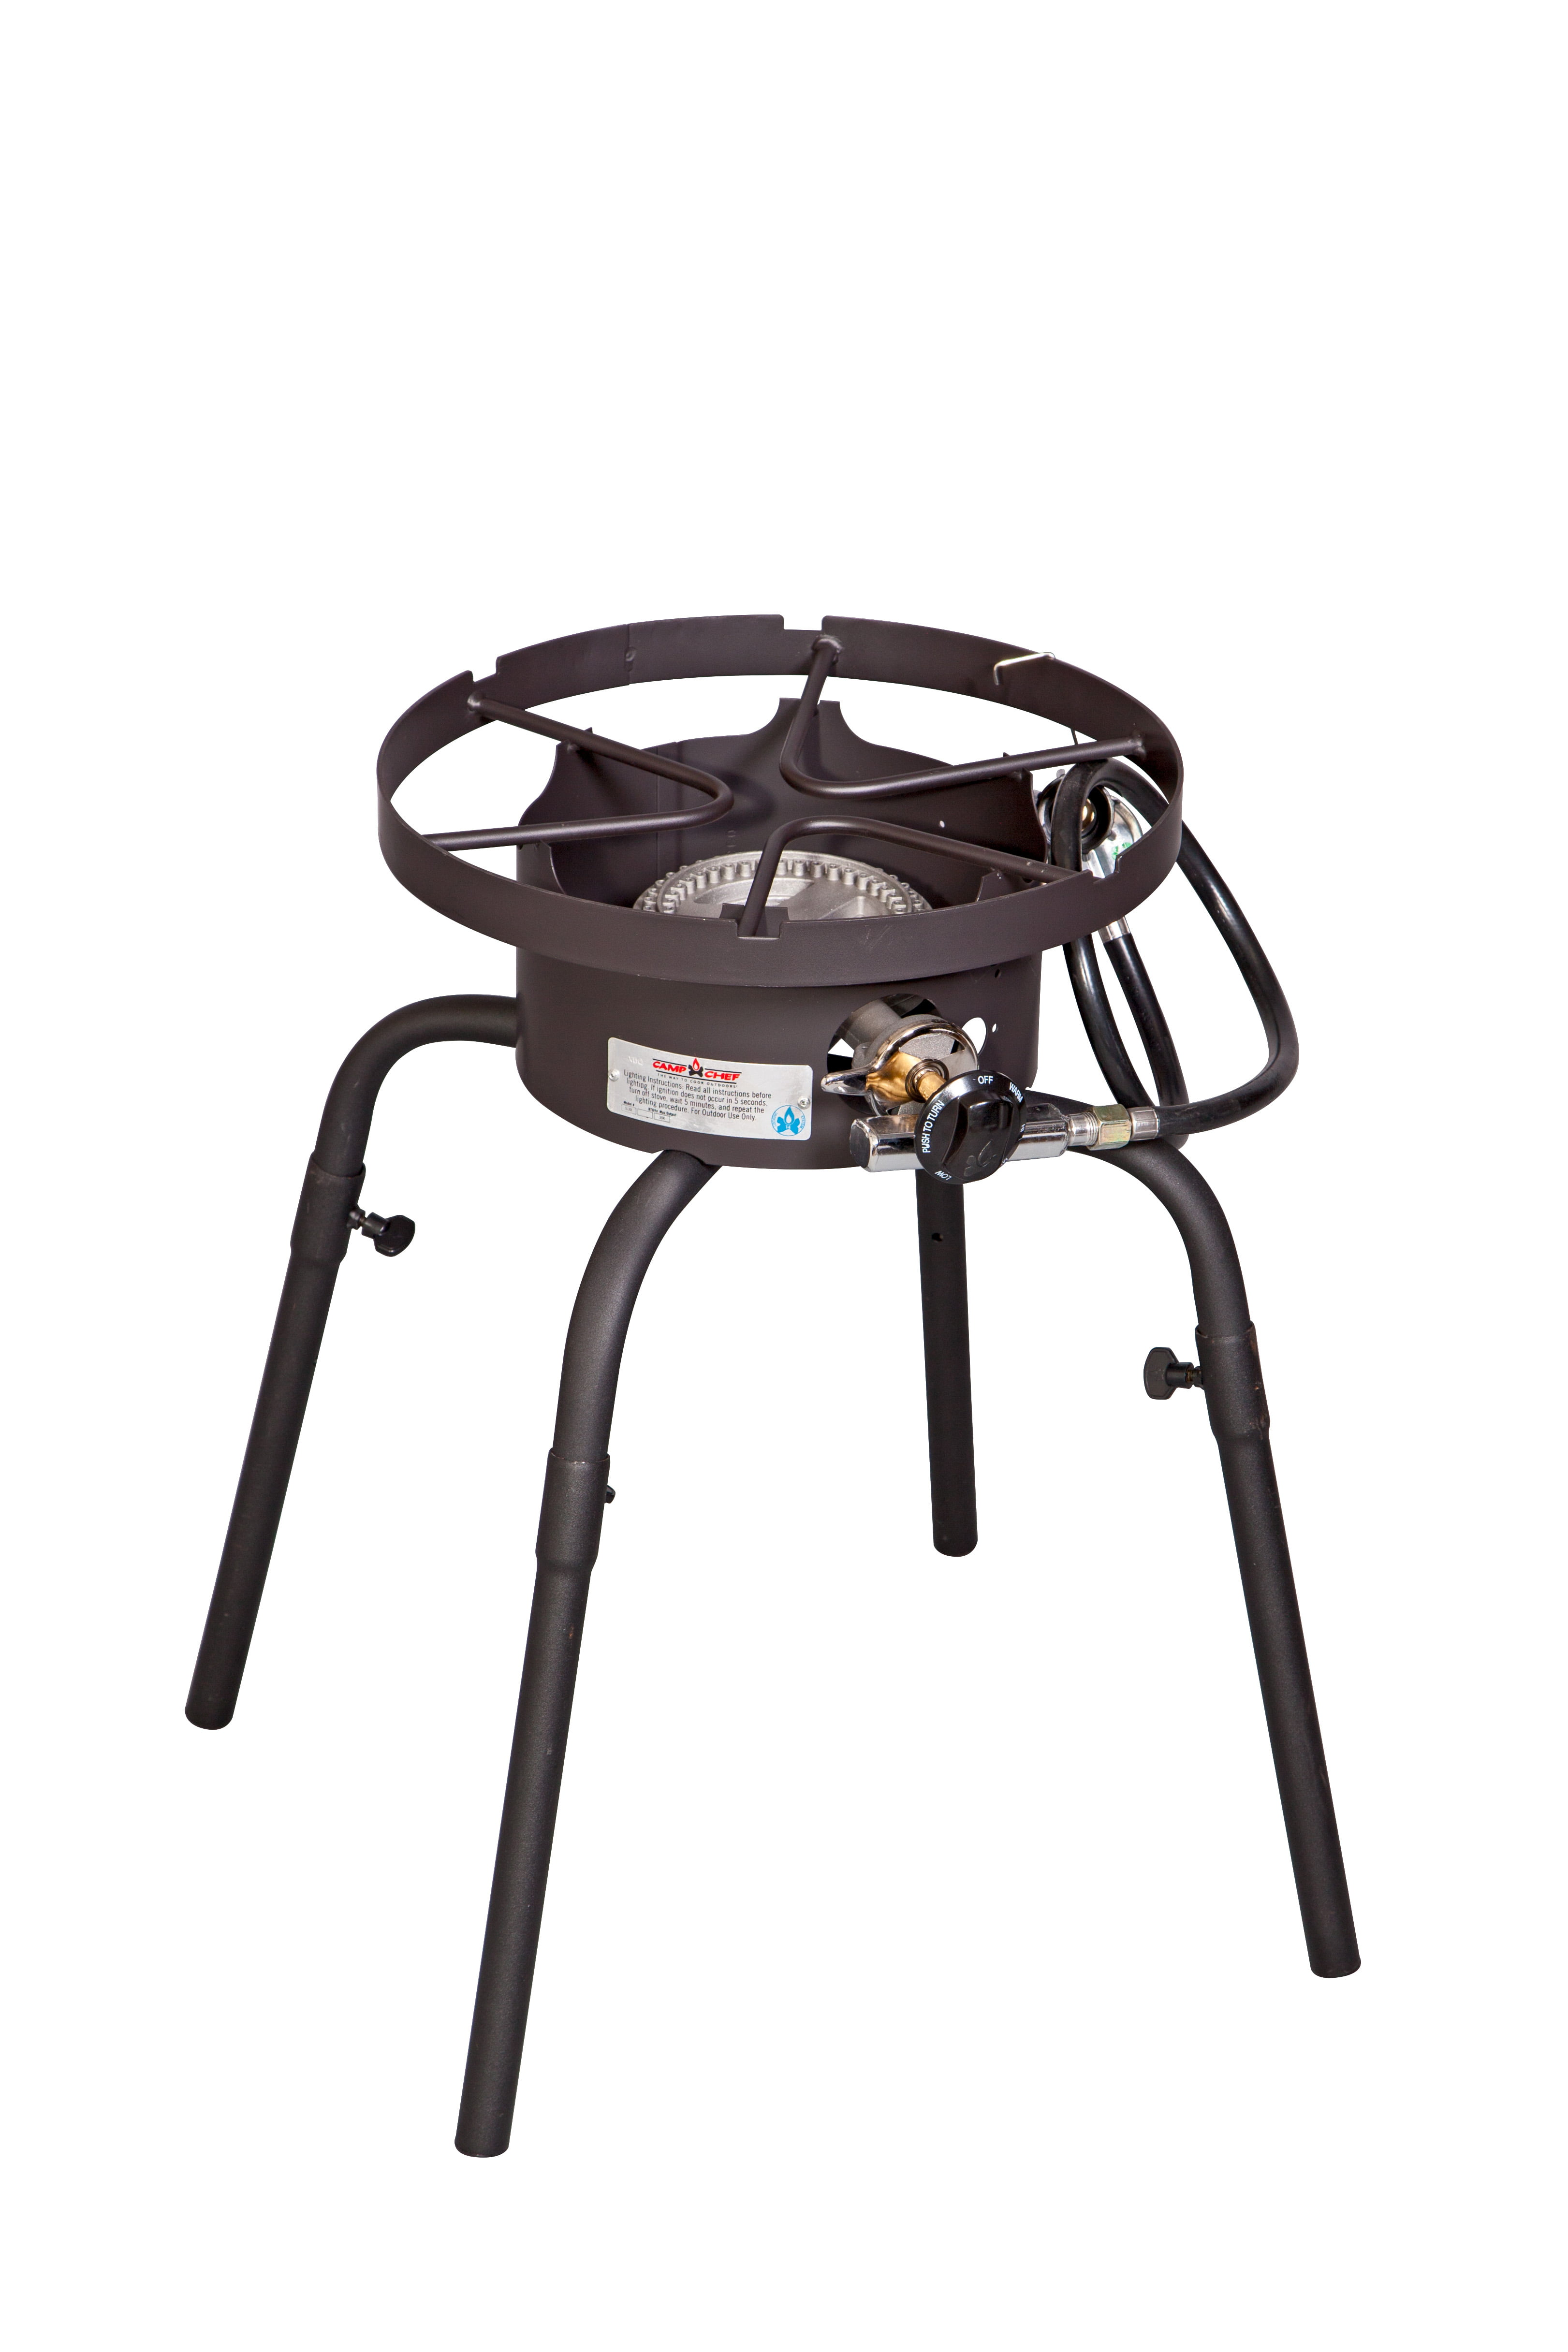 Camp Chef 30,000 BTU Universal Outdoor Single Burner Camp Stove by Camp Chef